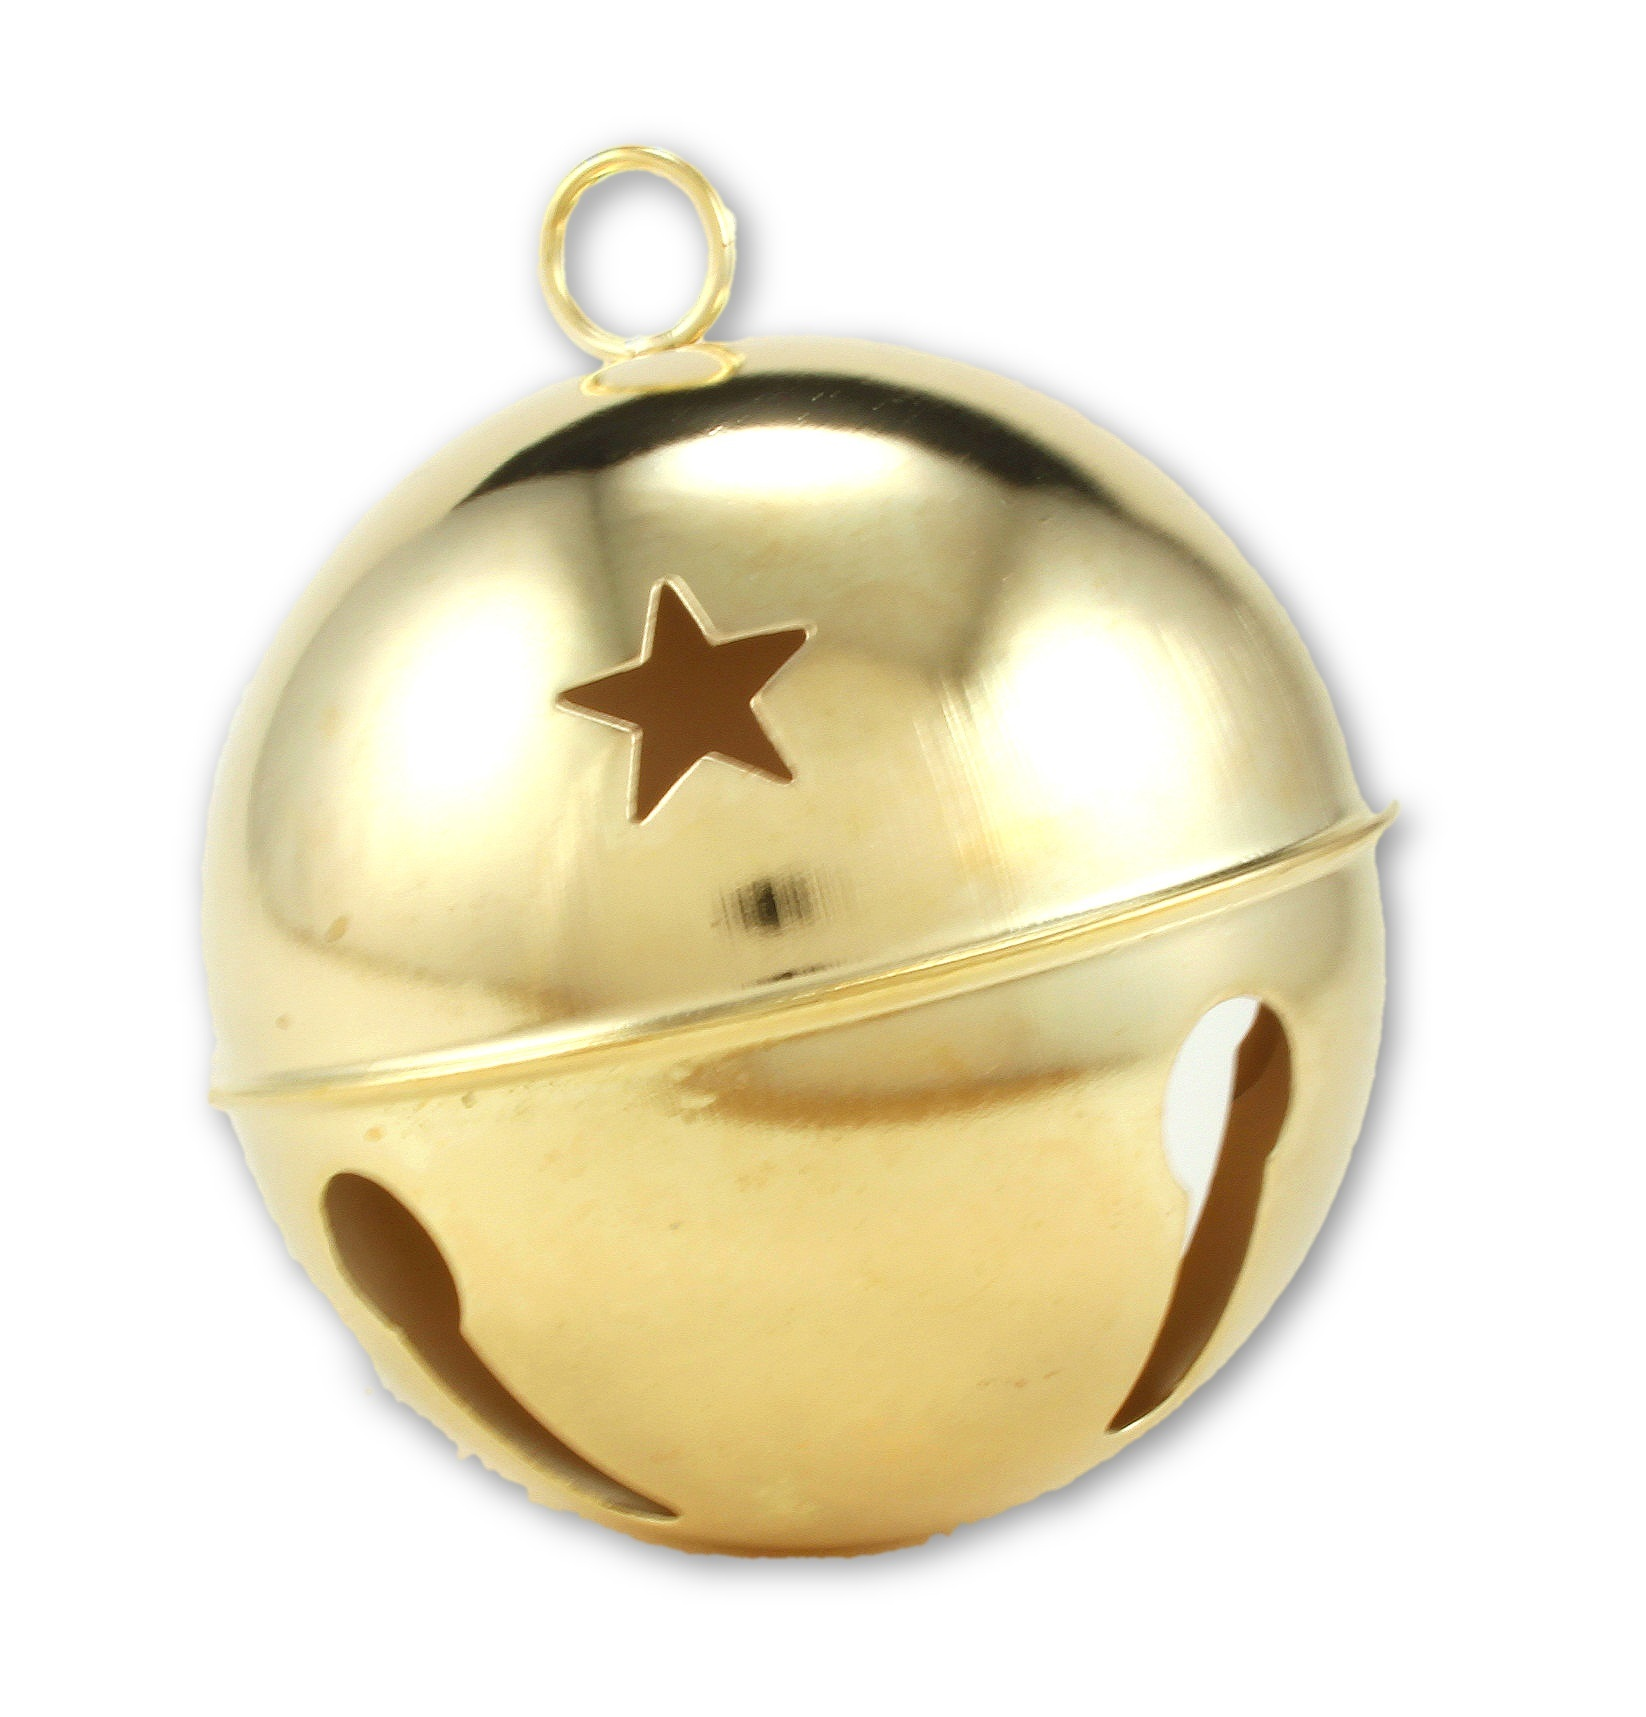 Christmas Bell.Details About 3 15 Inch 80mm Giant Jumbo Gold Jingle Bell With Stars 1 Piece